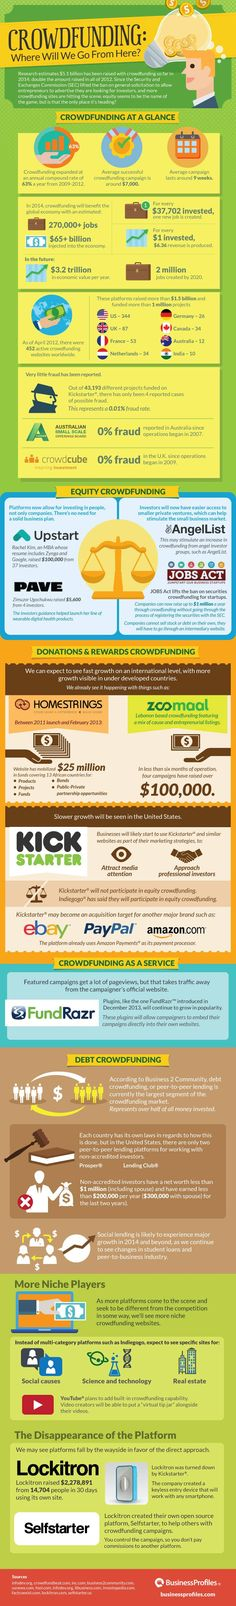 Where #Crowdfunding Will Go from Here